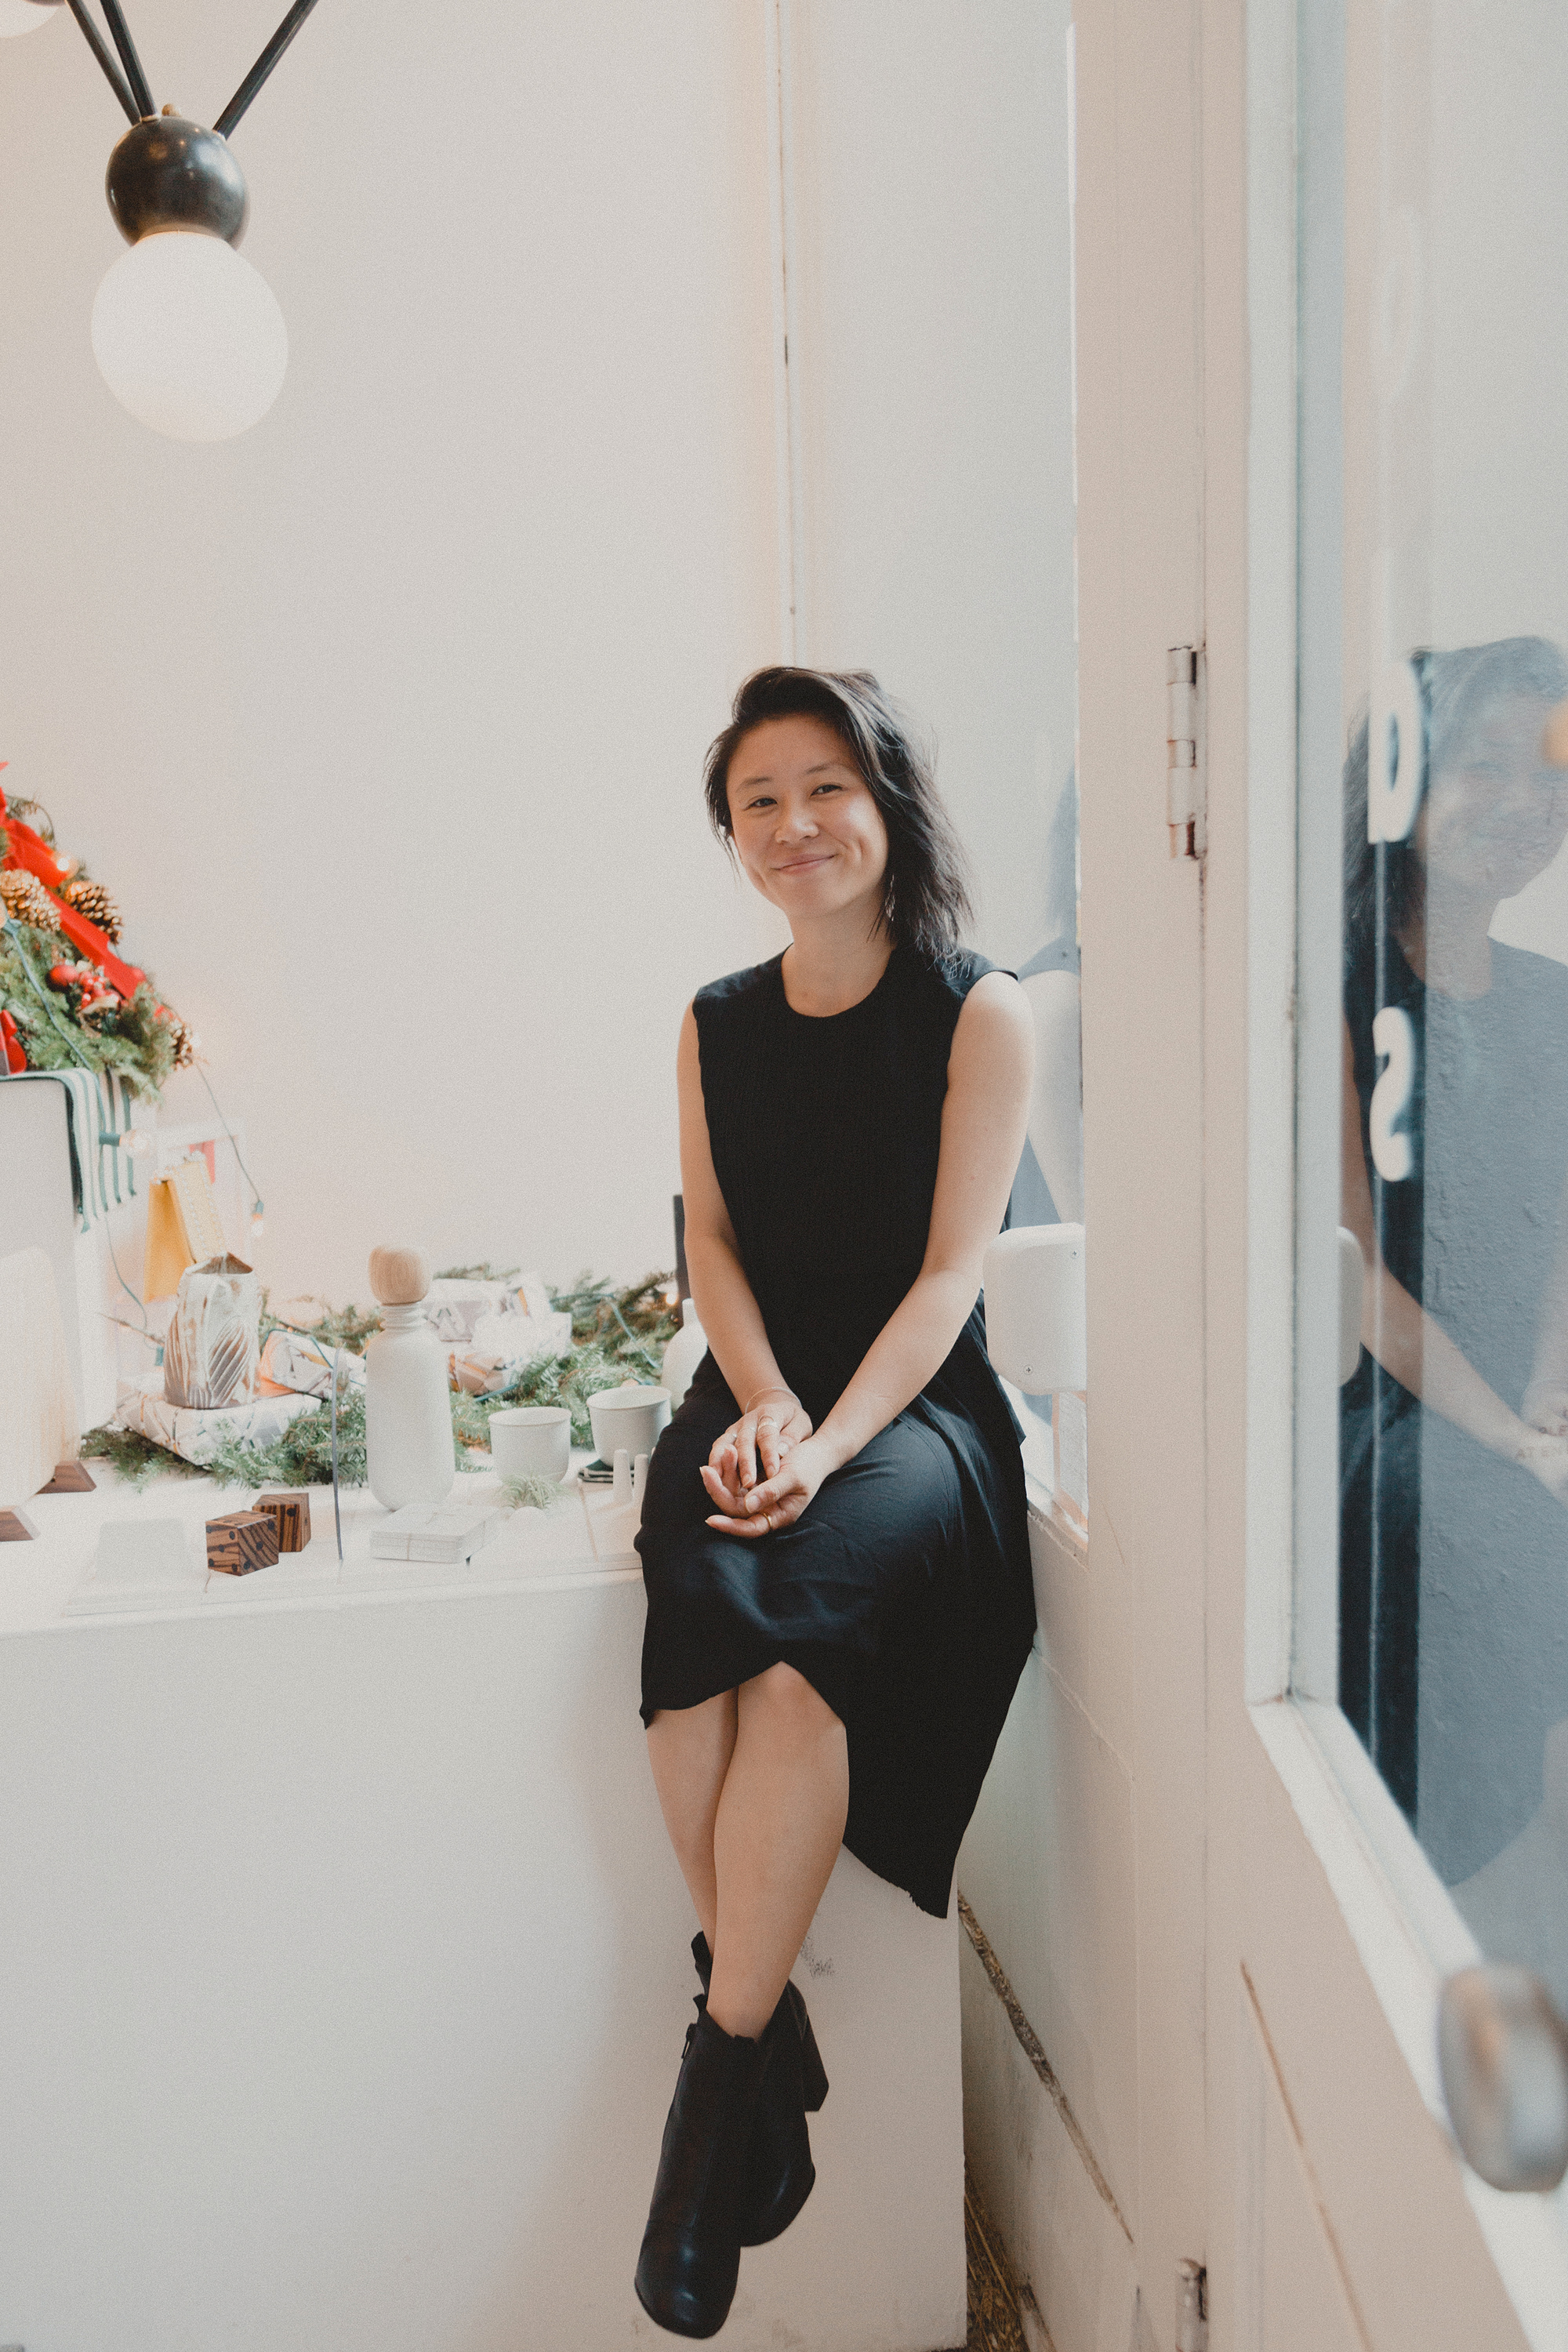 Rosa Ng at Good Goods